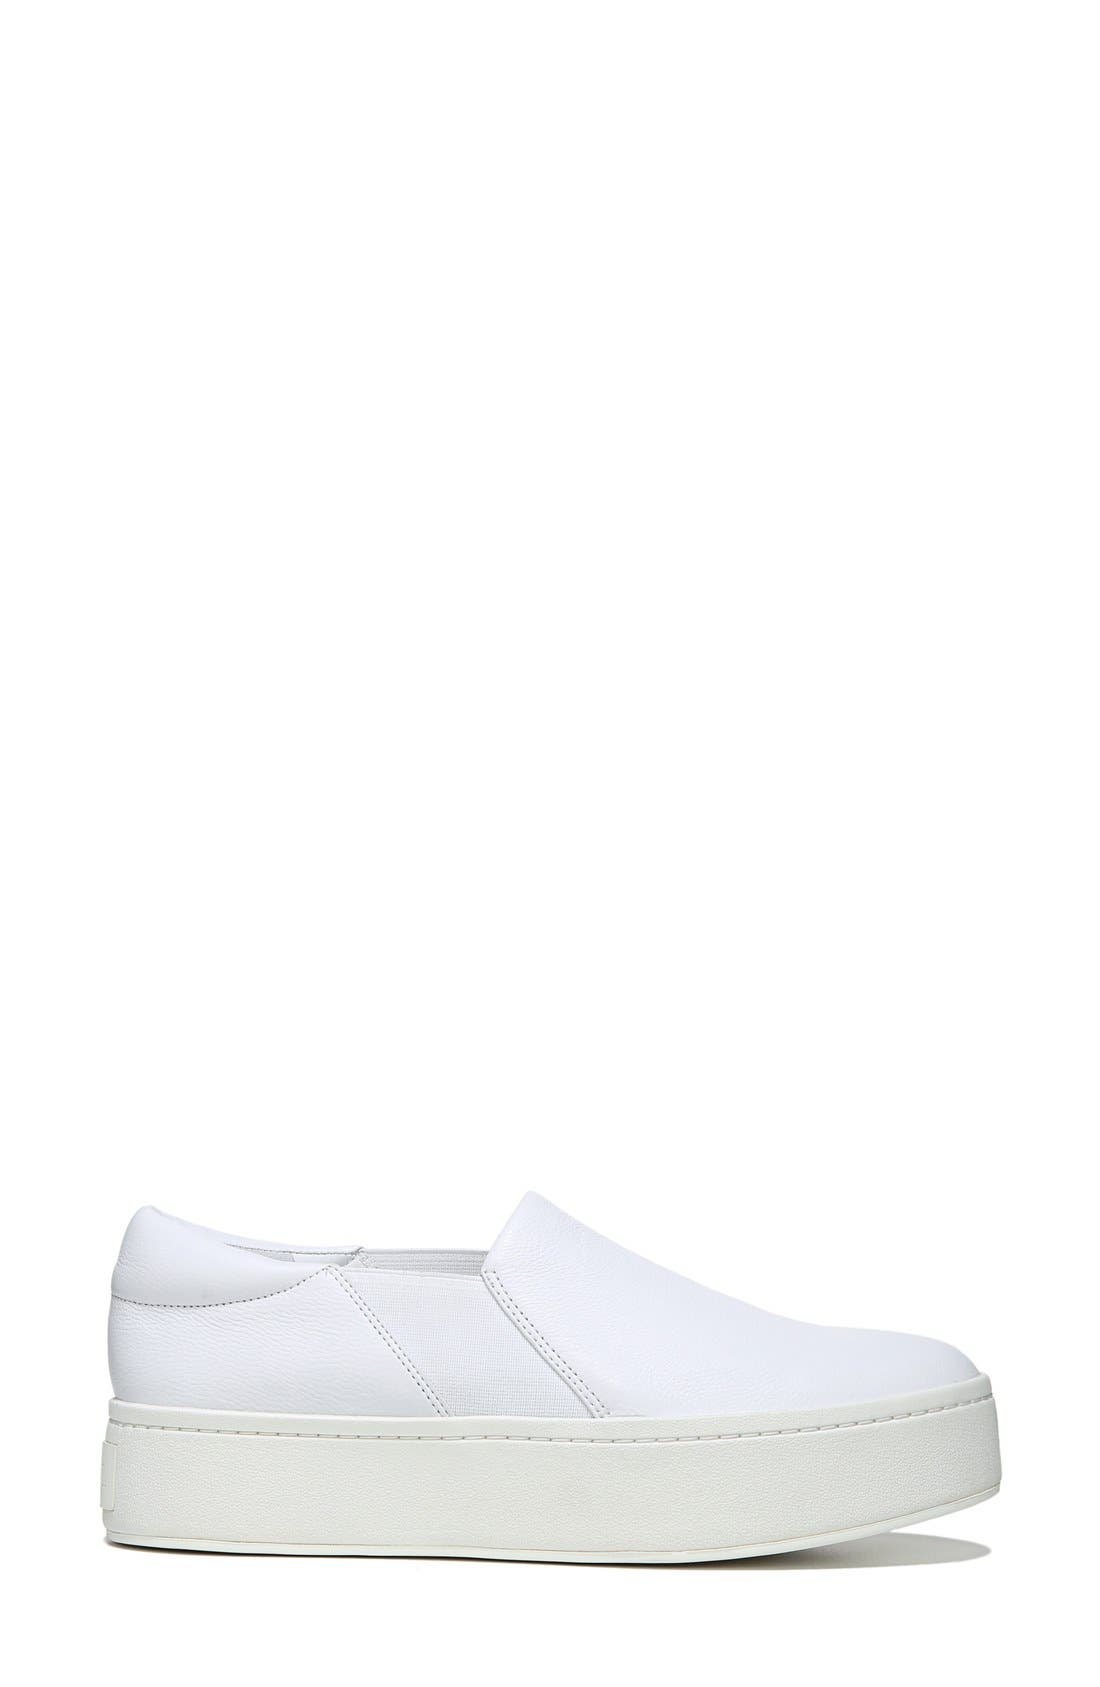 Warren Slip-On Sneaker,                             Alternate thumbnail 2, color,                             100